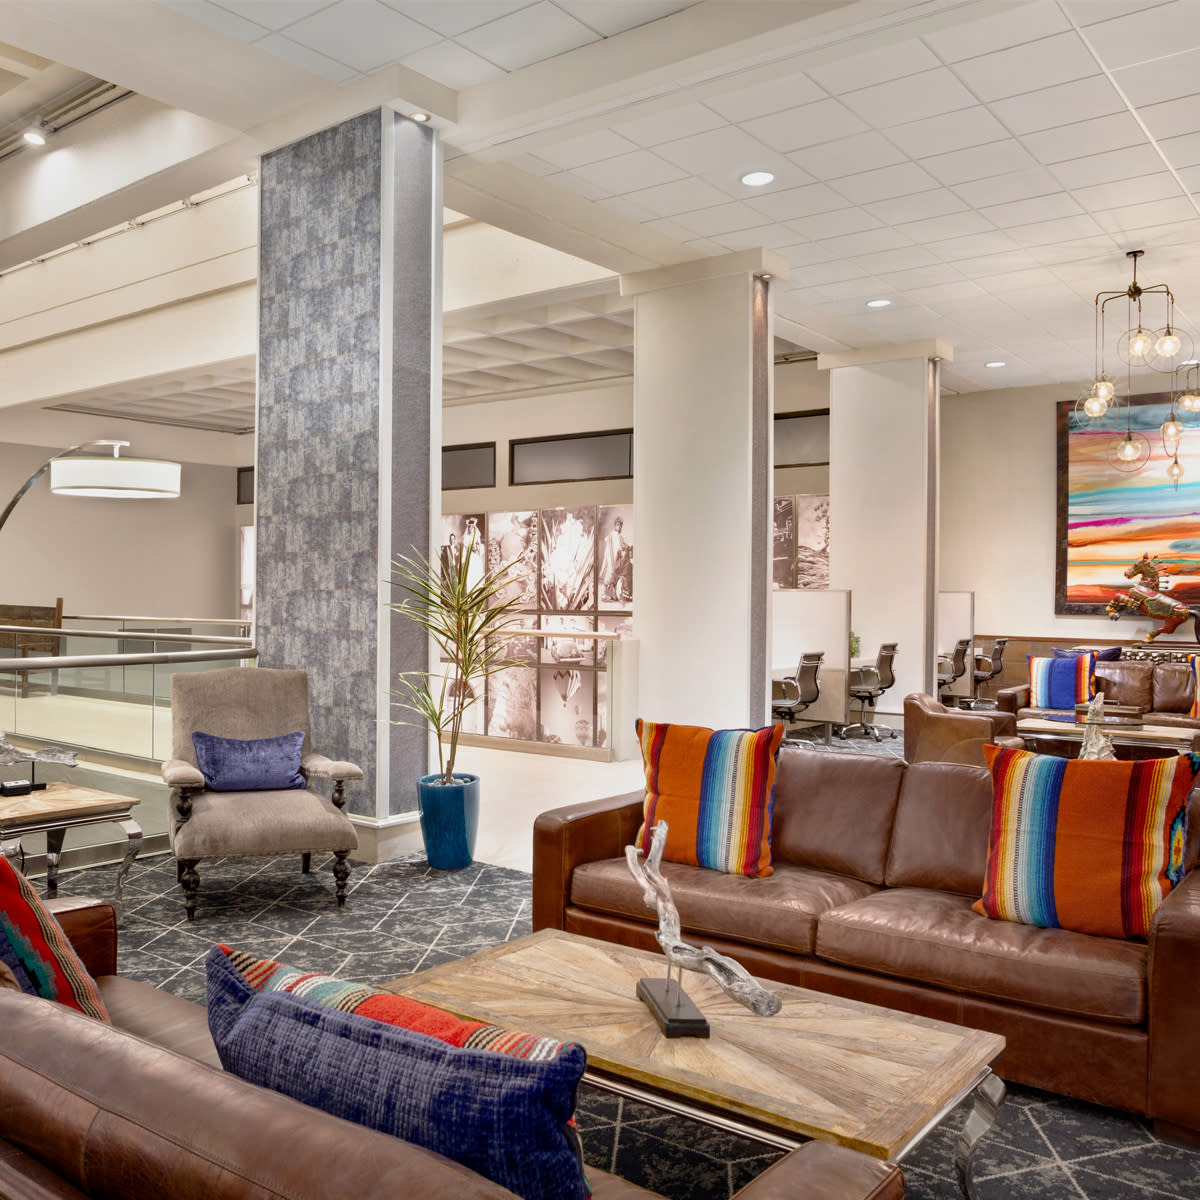 A Doubletree By Hilton Hotel In: DoubleTree By Hilton Hotel Albuquerque